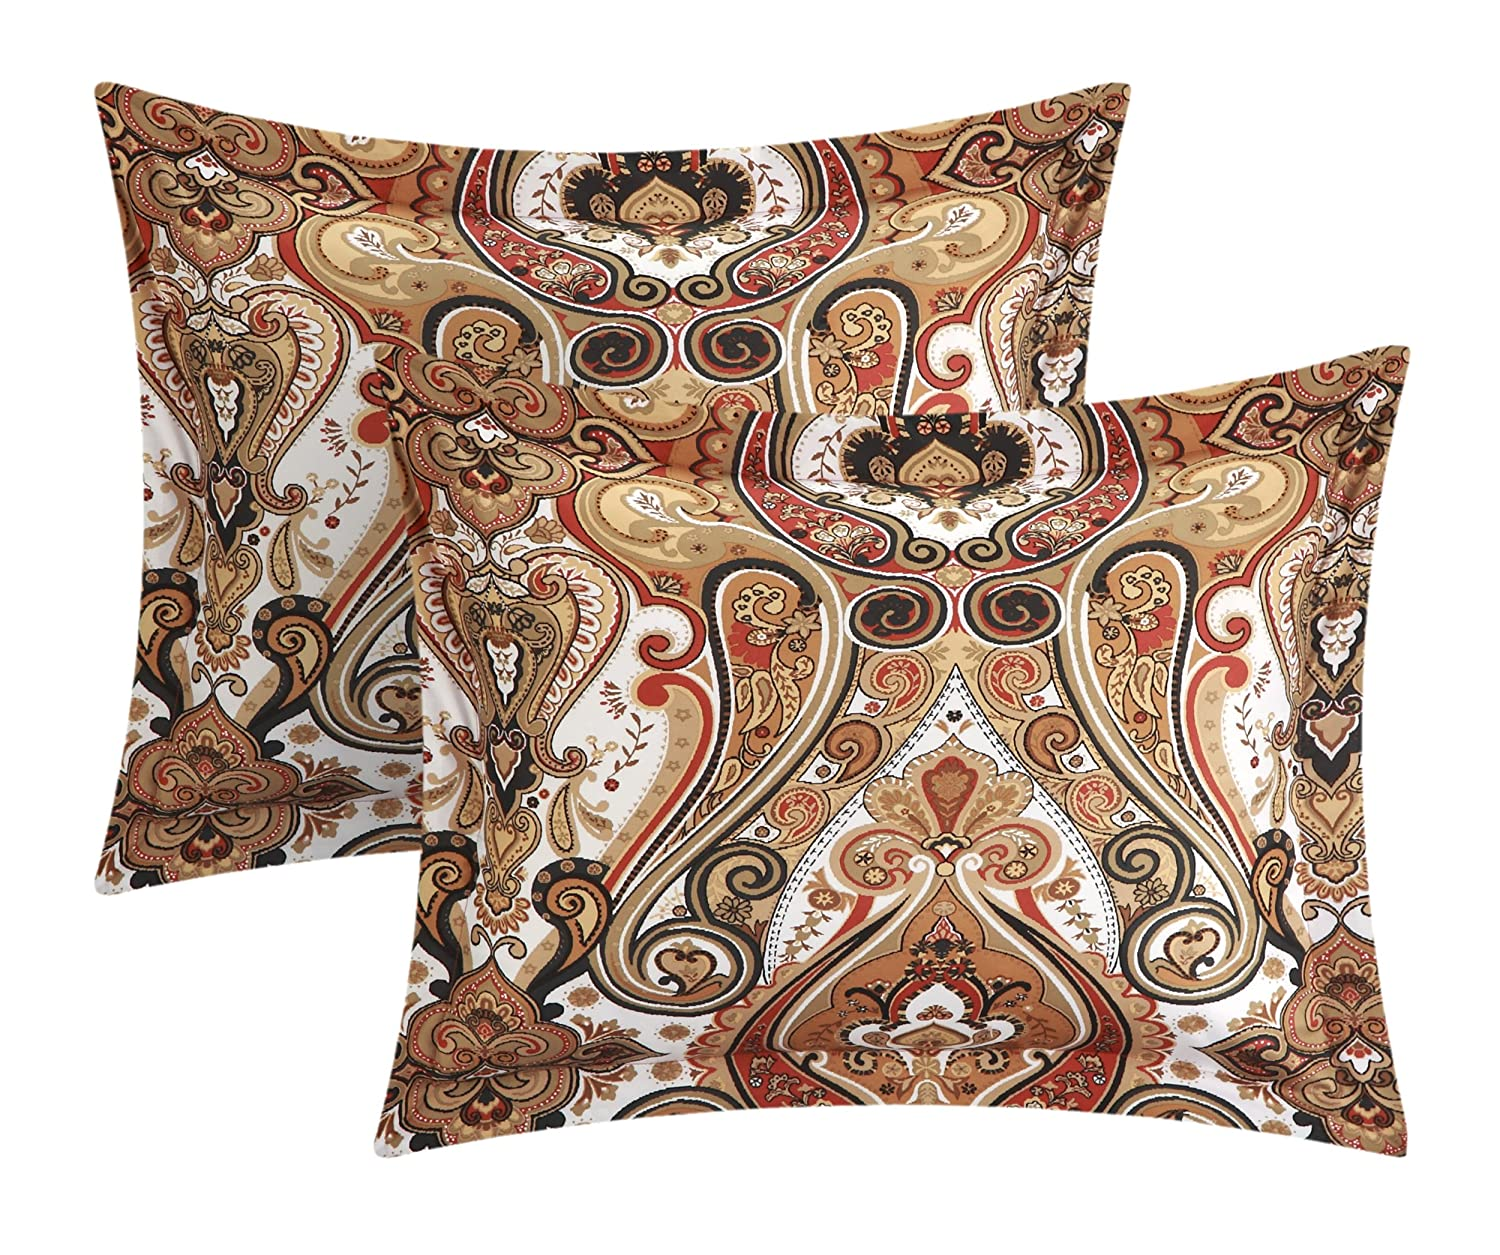 Chic Home 4 Piece Paisley Global Inspired Vedara Reversible Quilt Brown QS3353-AN King